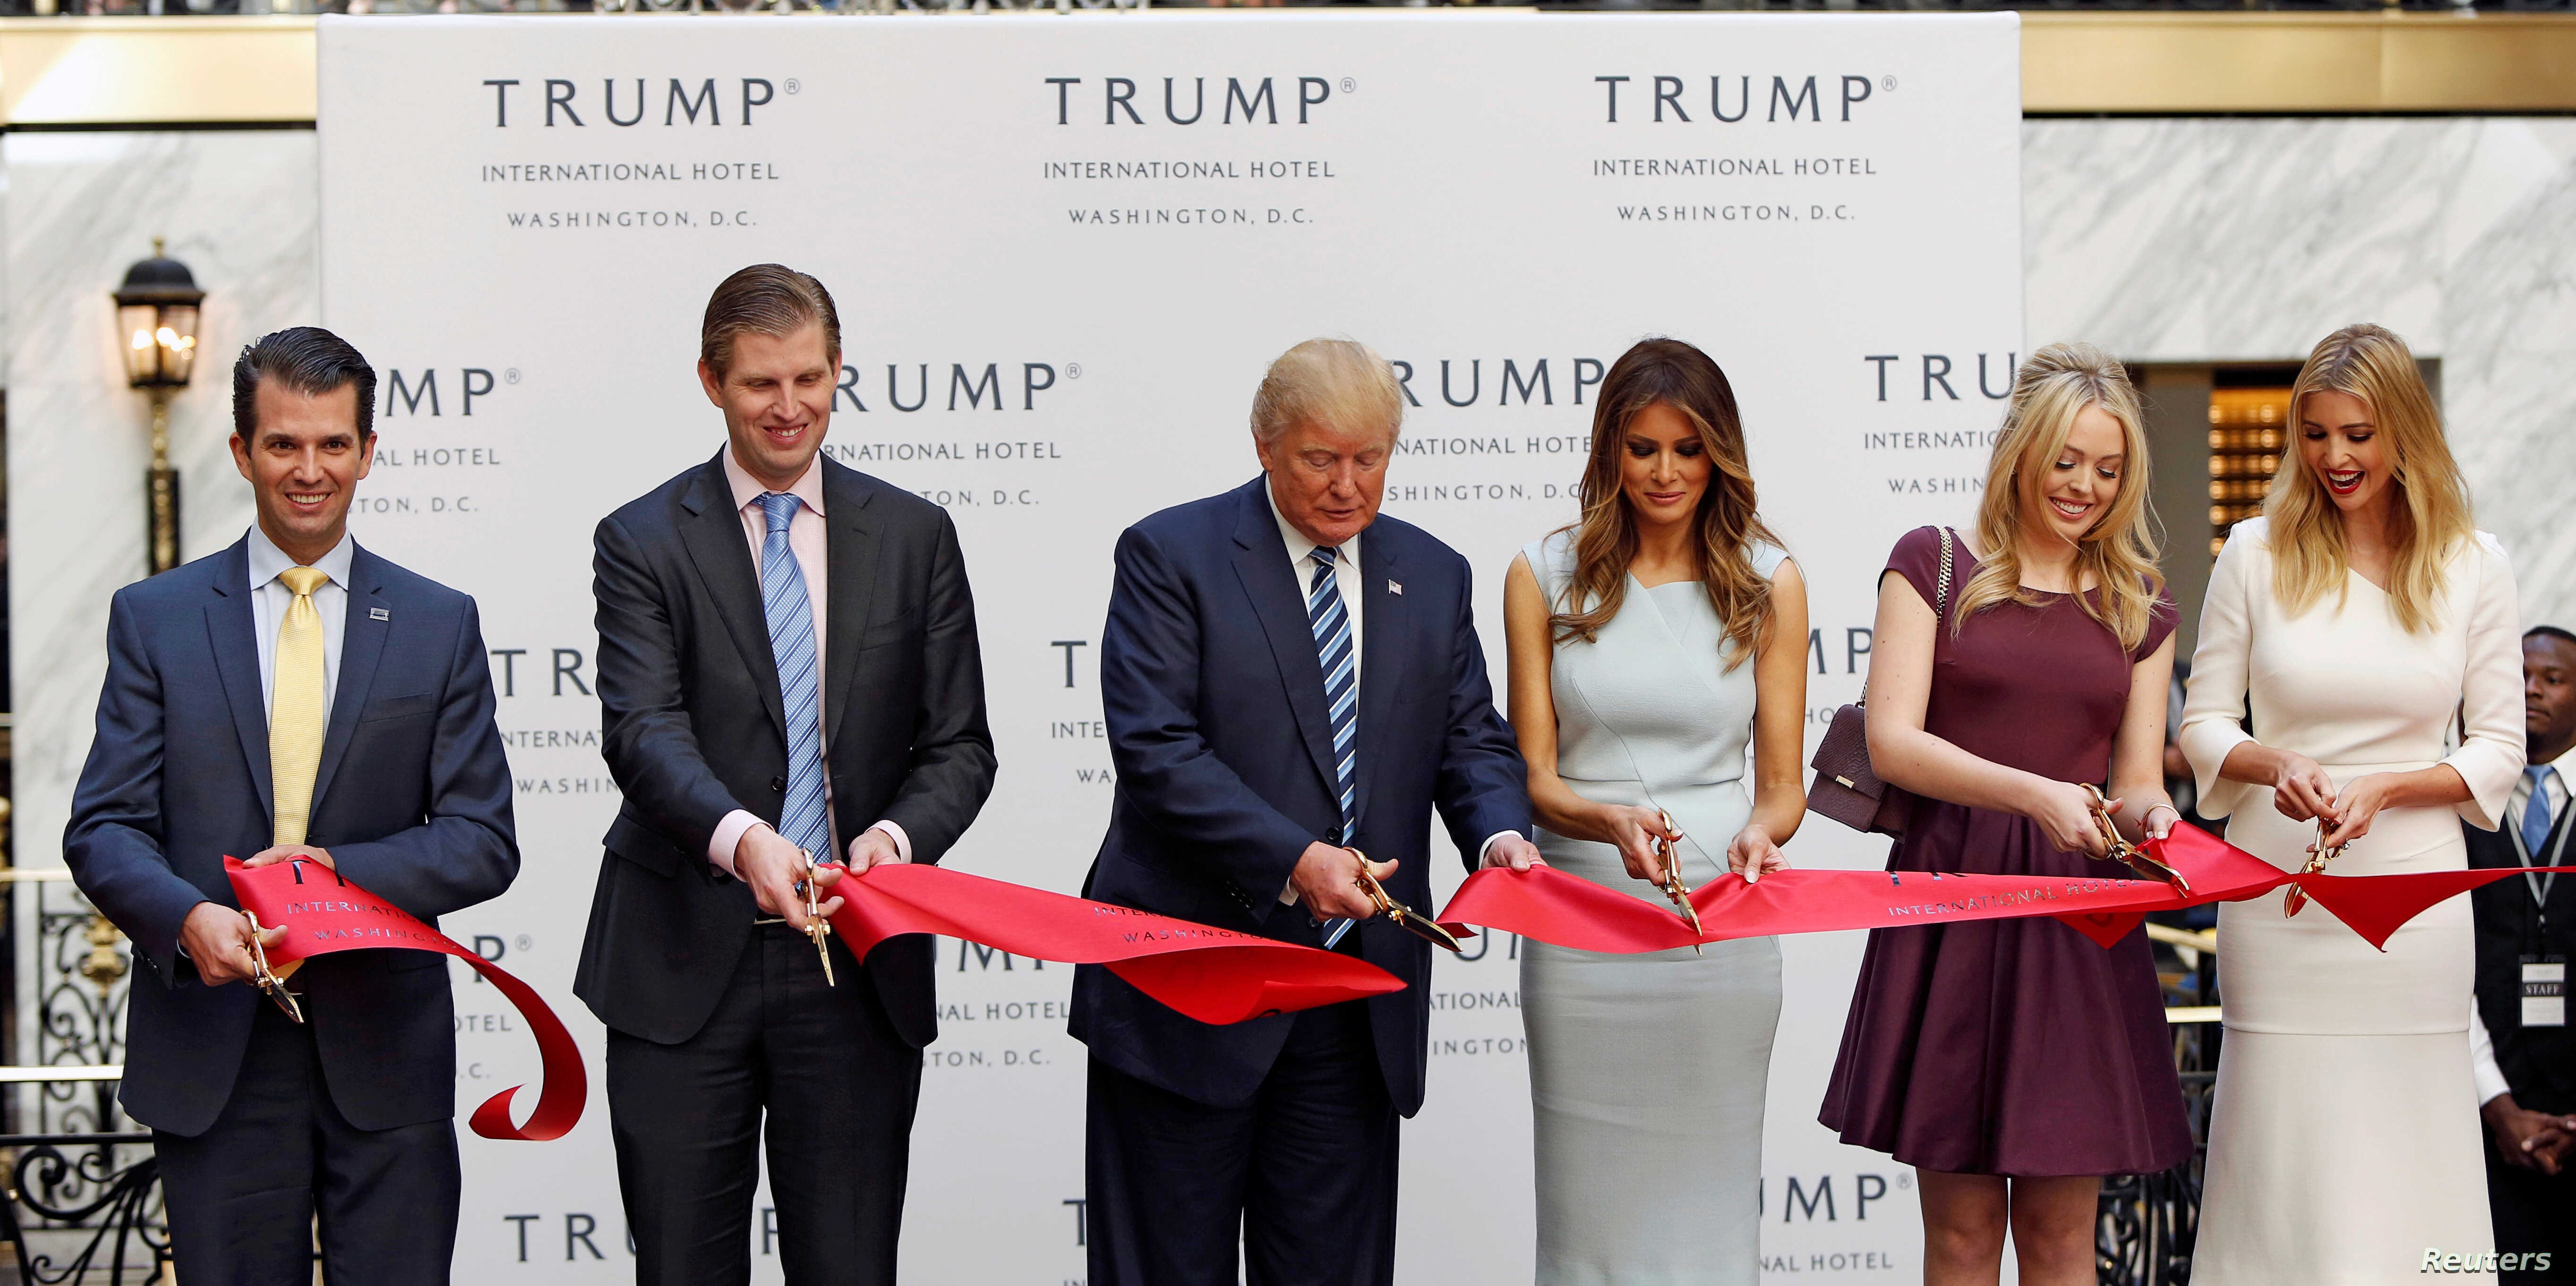 (L-R) Donald Trump Jr., Eric Trump, then-Republican U.S. presidential nominee Donald Trump, Melania Trump, Tiffany Trump and Ivanka Trump attend an official ribbon cutting ceremony at the new Trump International Hotel in Washington U.S., Oct. 26, 201